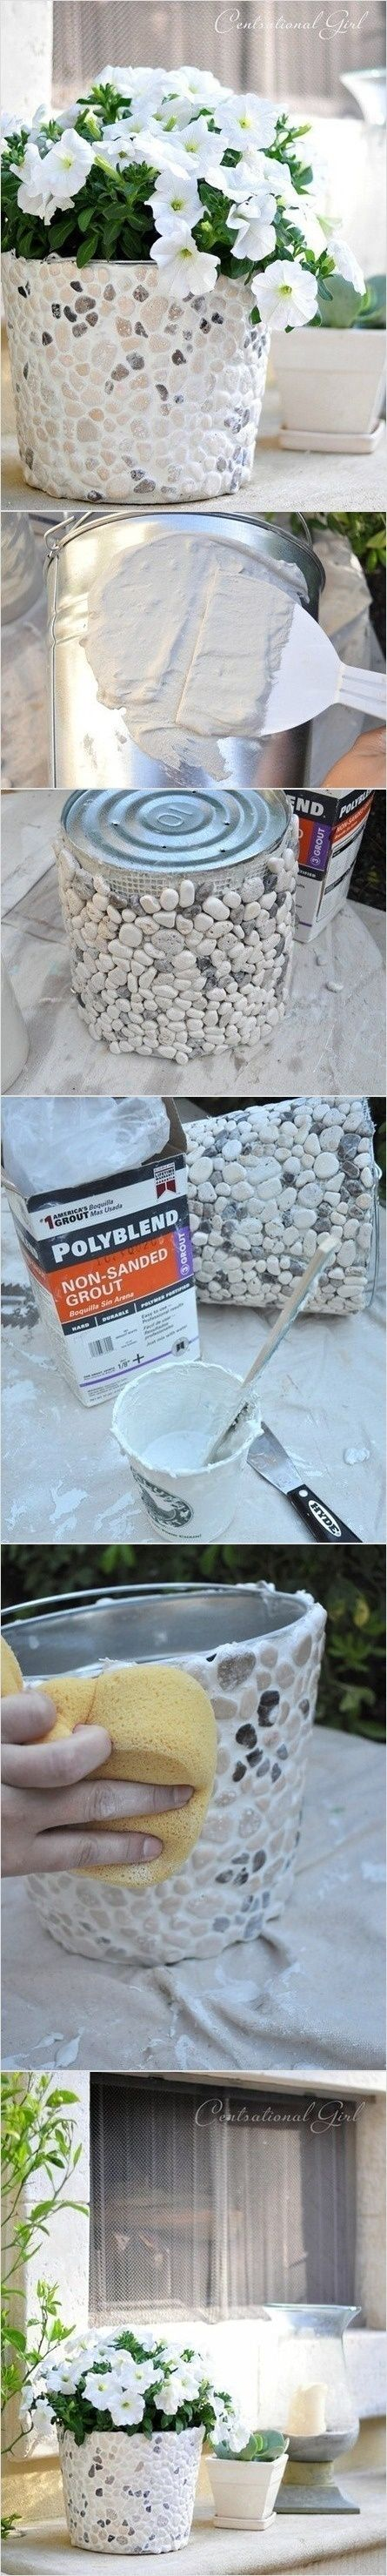 DIY rock covered bucket